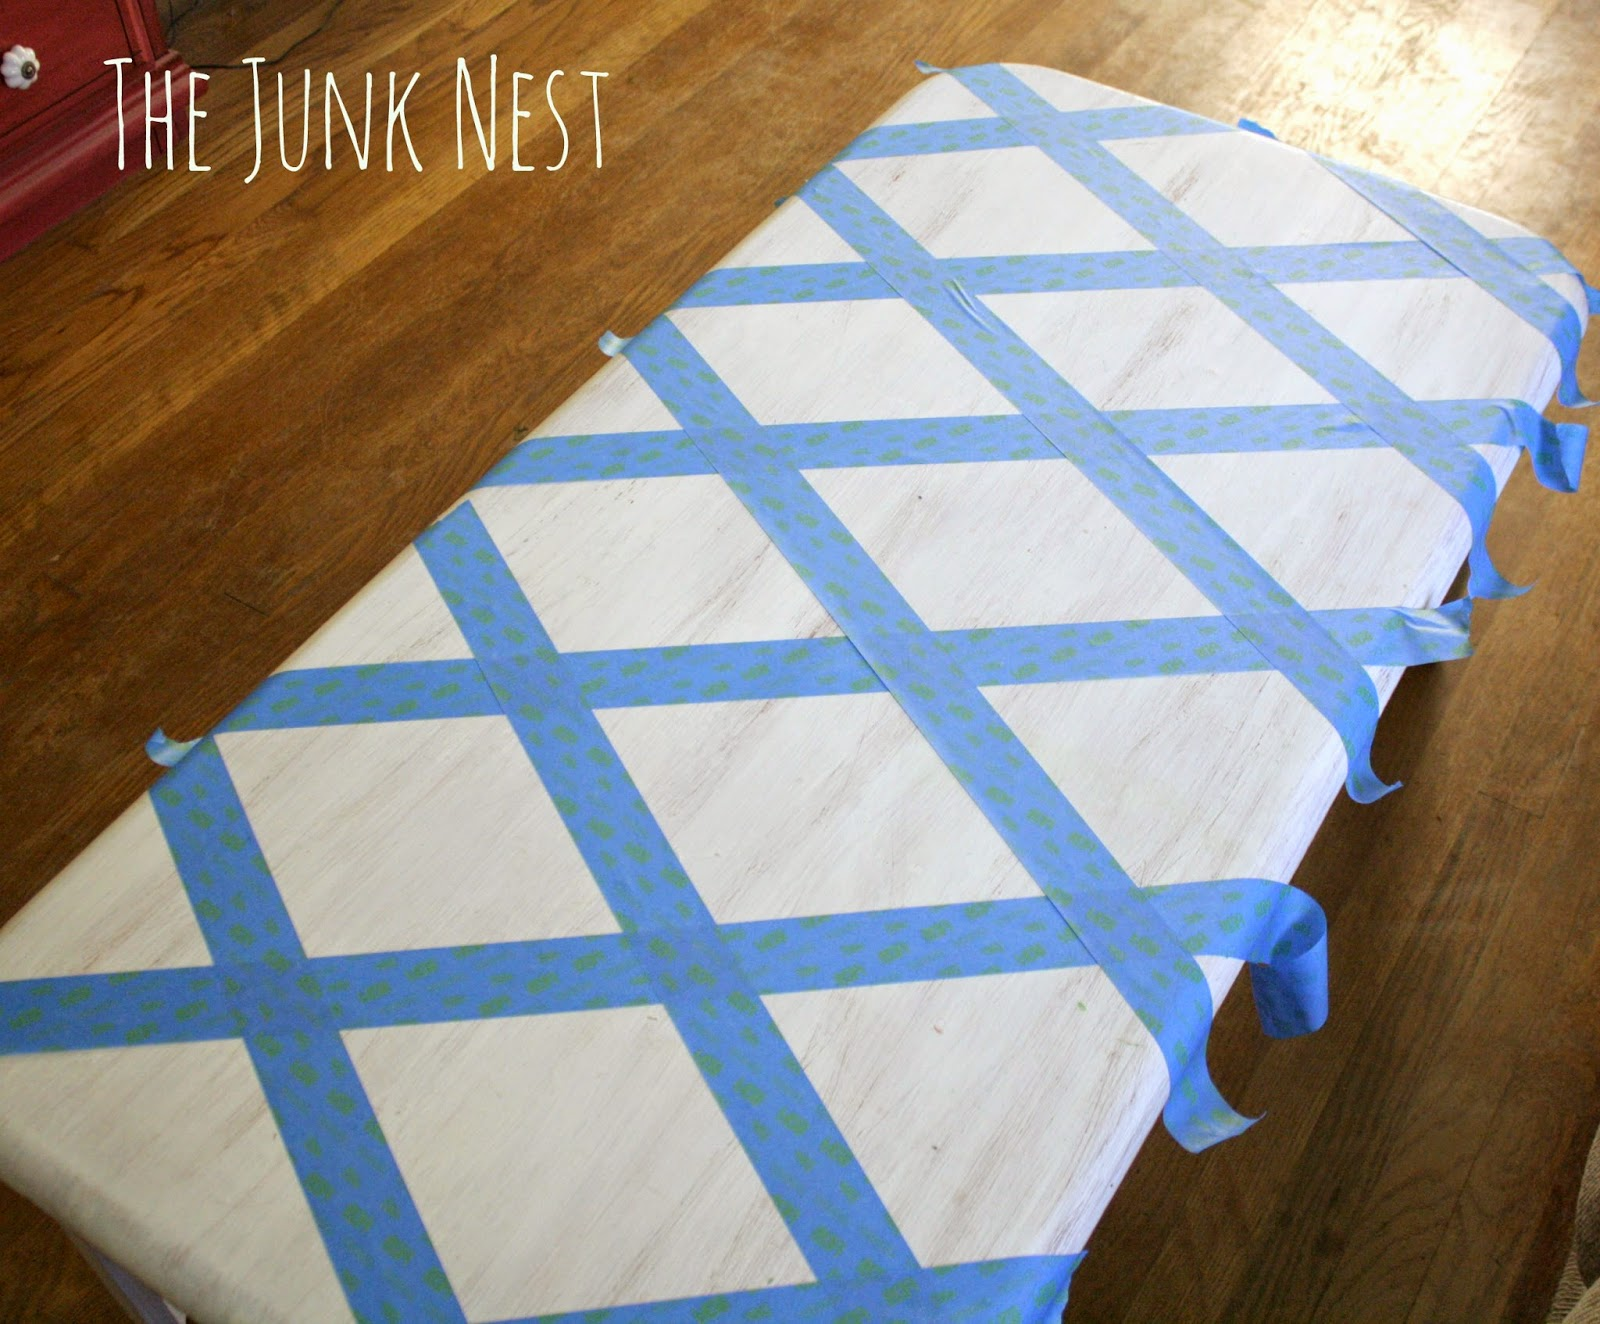 The junk nest diy painted coffee table i taped off a diamond pattern with painters tape and then i sanded all the diamond shapes this whole project literally took me about 20 minutes geotapseo Images